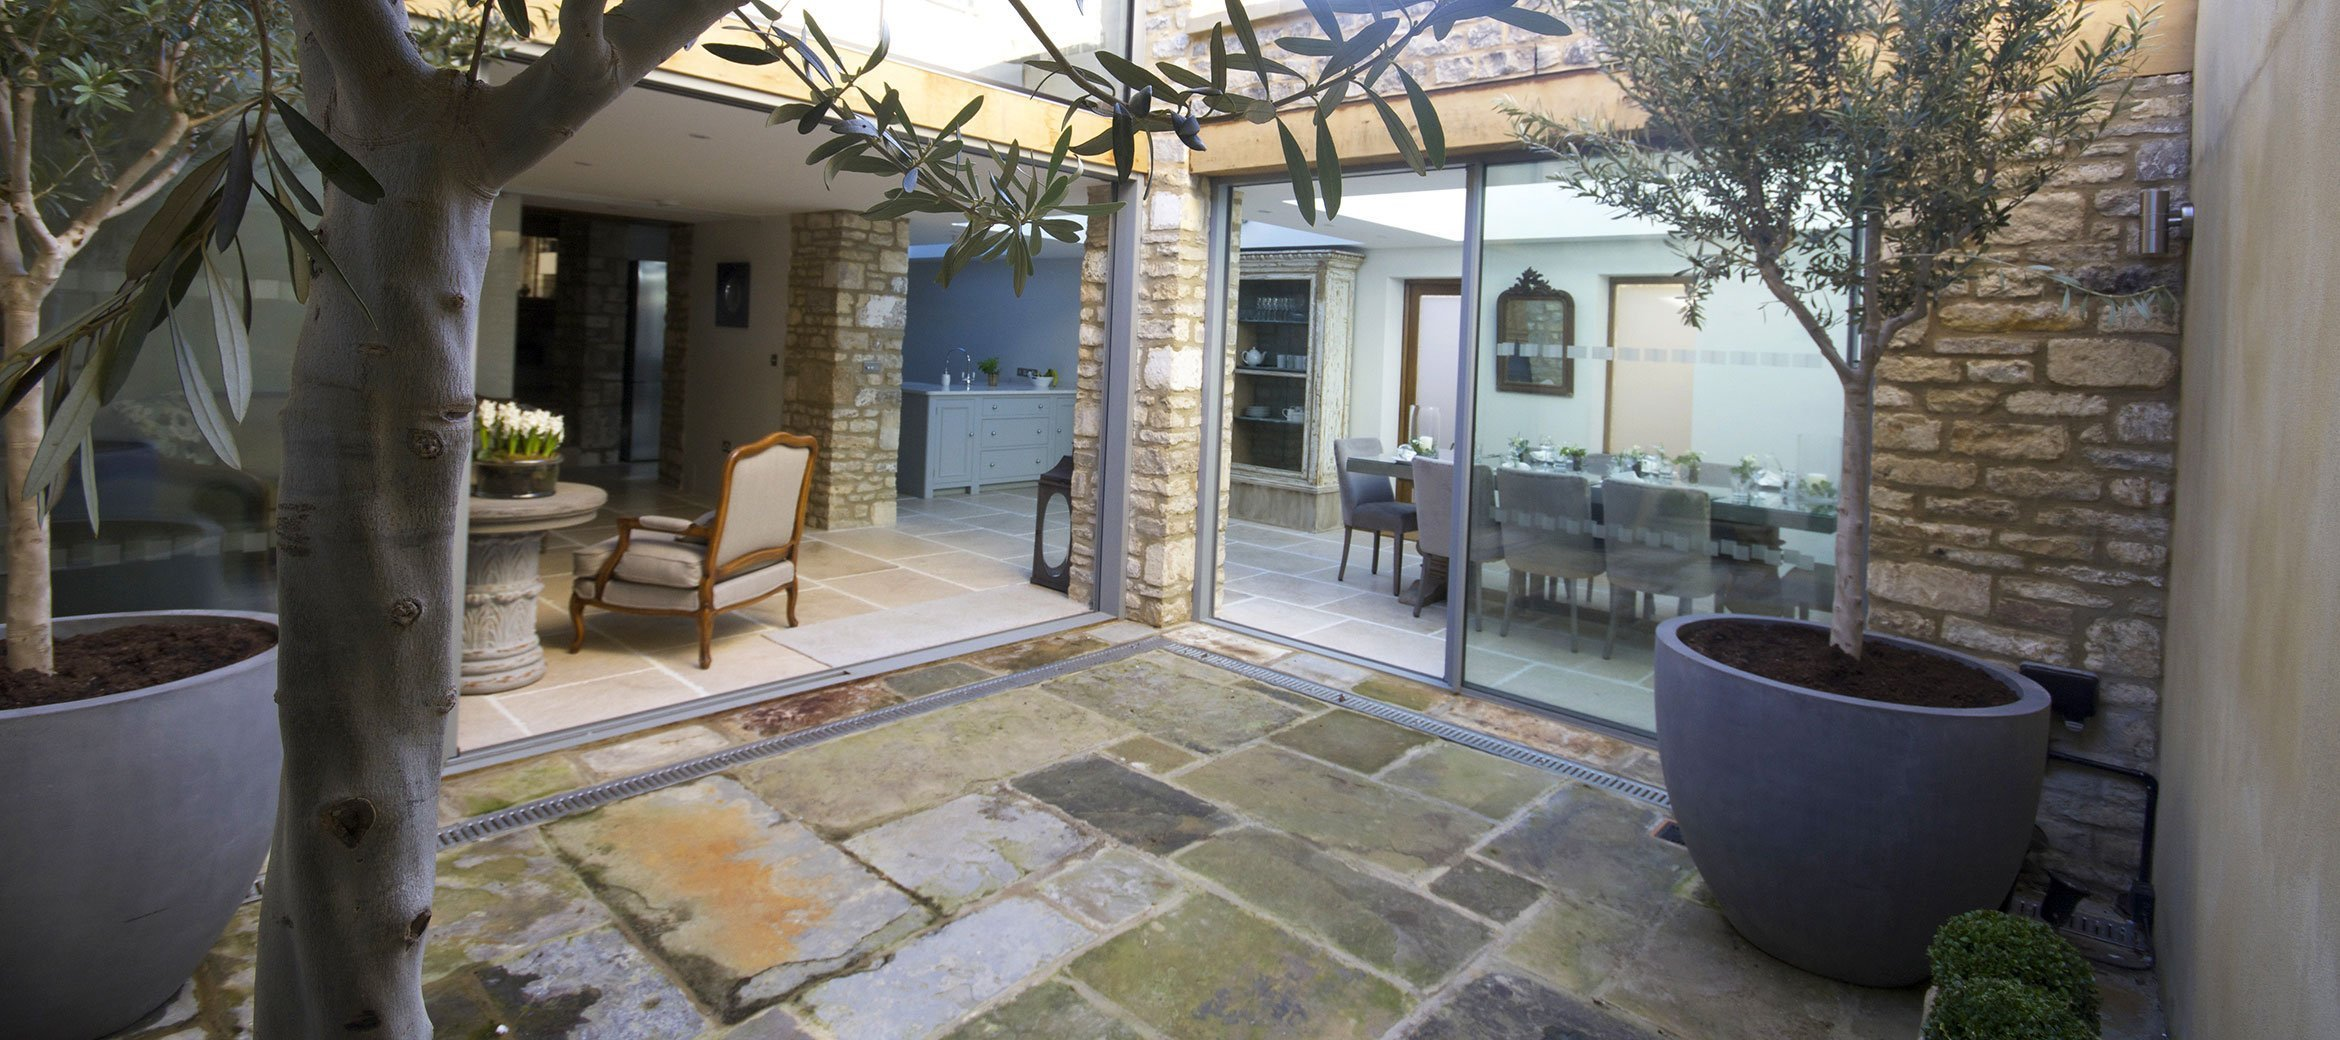 burford-cotswold-cottage-dining-kitchen-courtyard